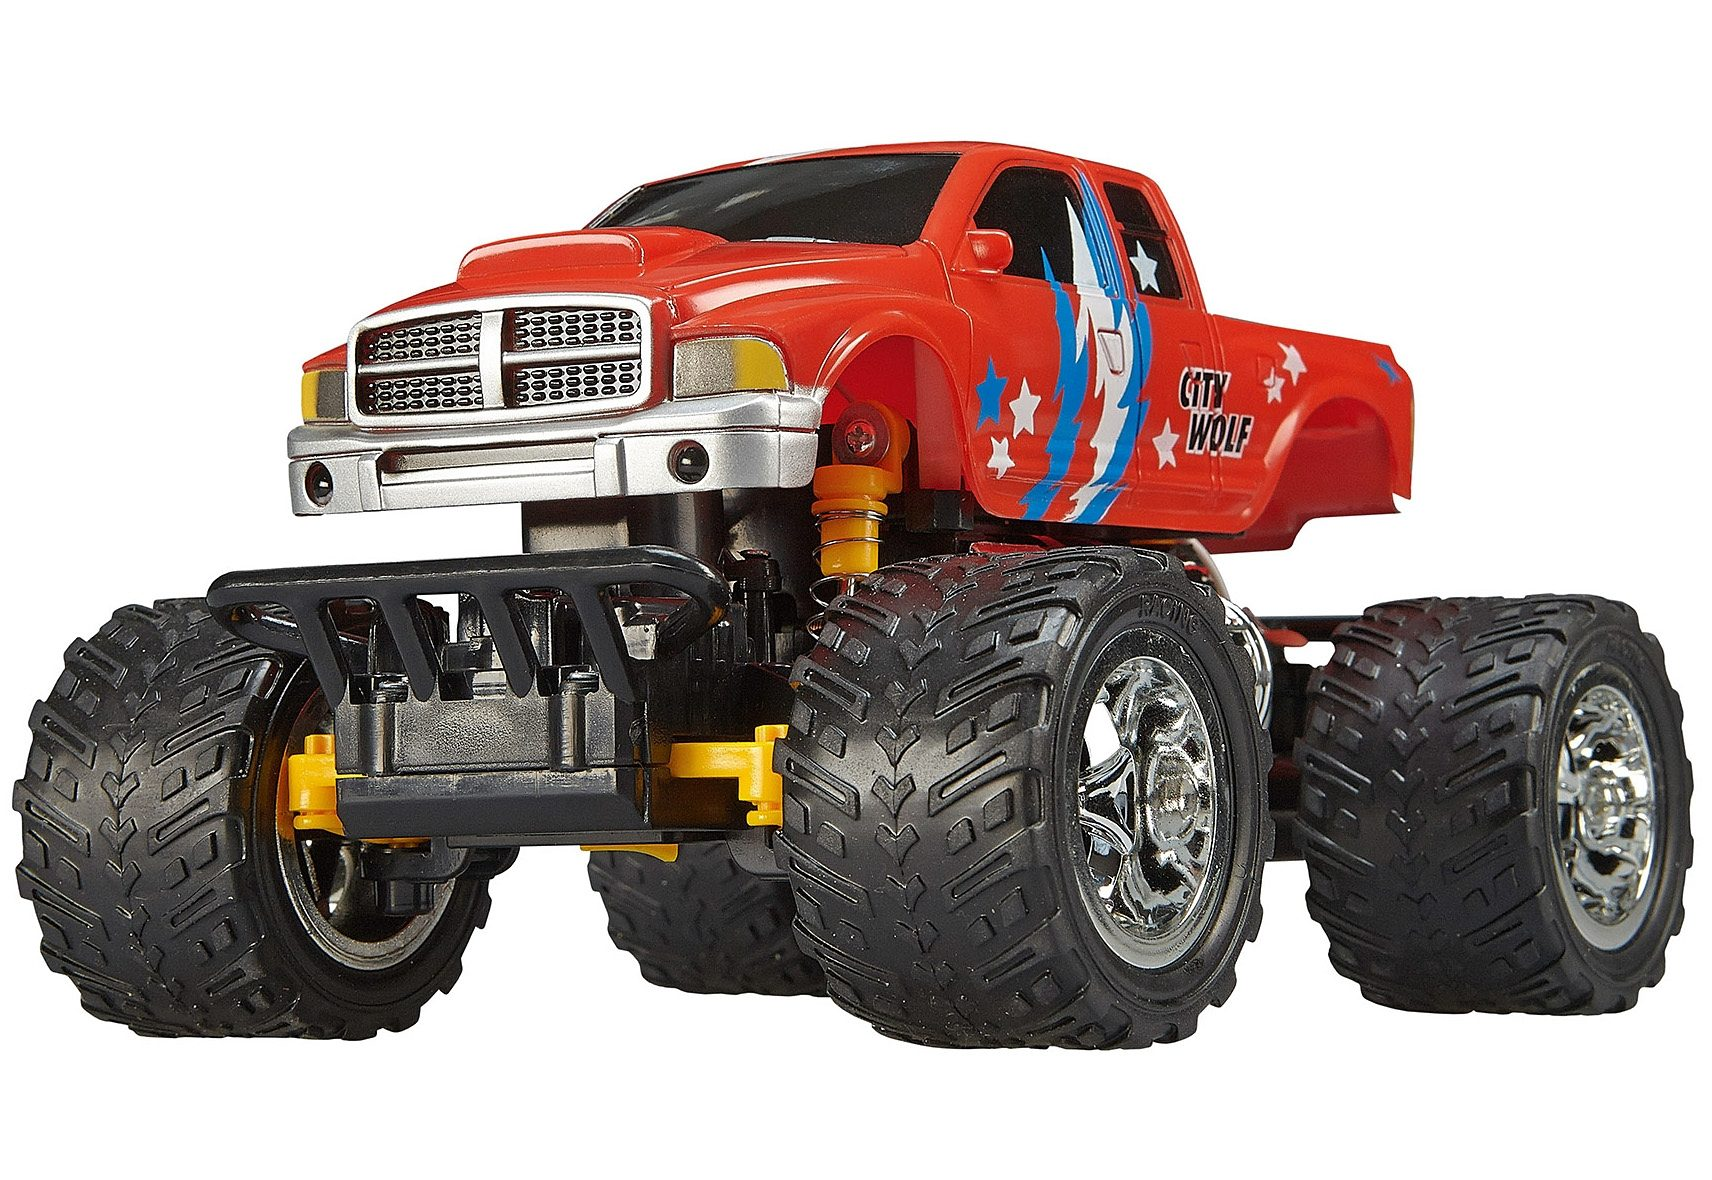 Revell® RC Auto, »Revell® Control Monstertruck City Wolf«